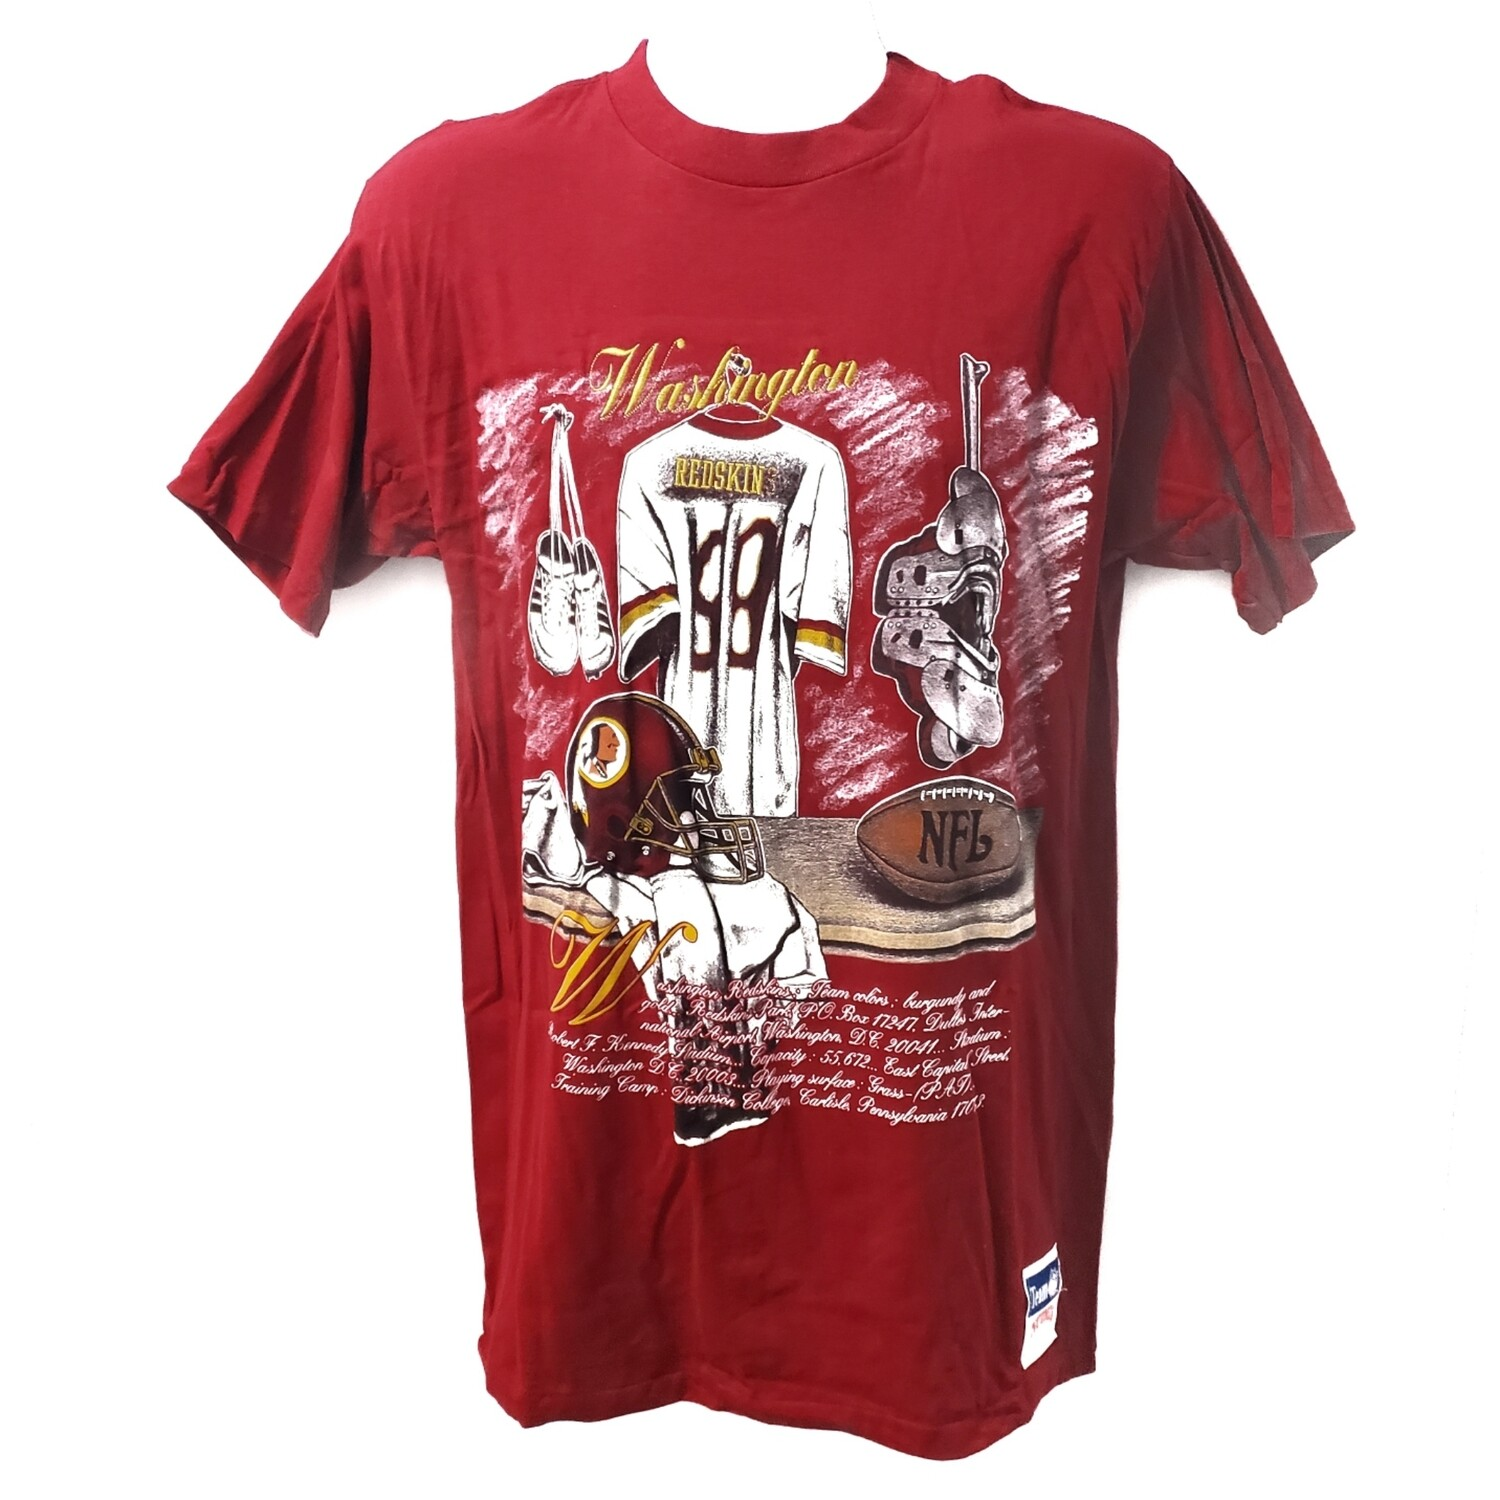 Washington Redskins Vintage Nutmeg Tee